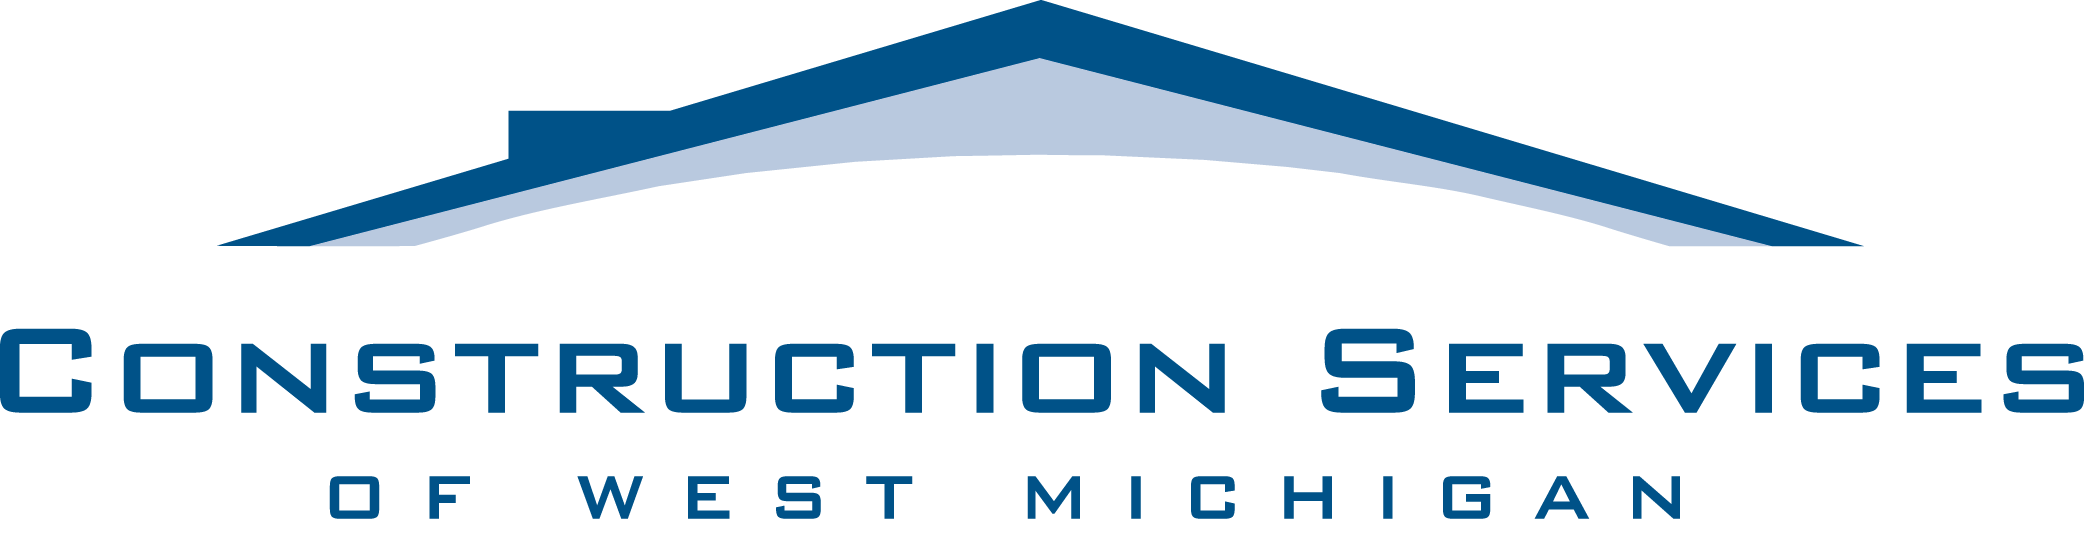 Construction Services Of West Michigan